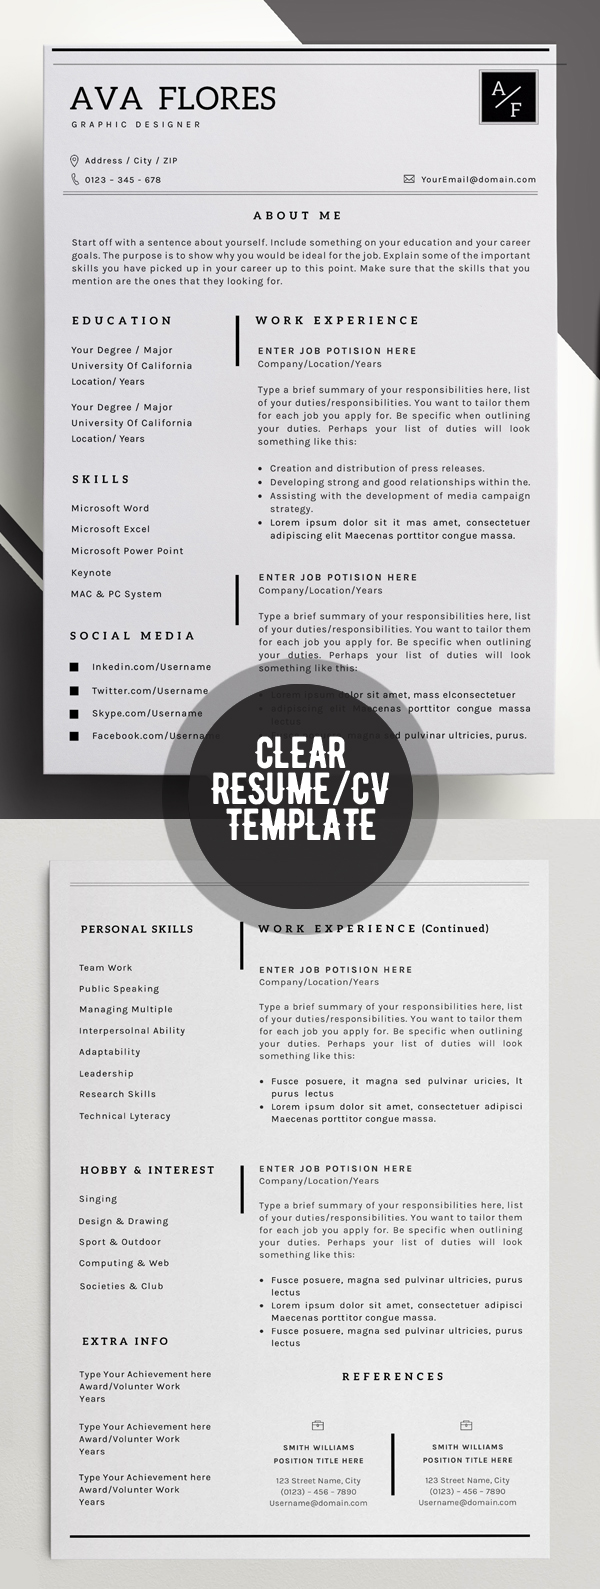 50 Best Minimal Resume Templates - 6